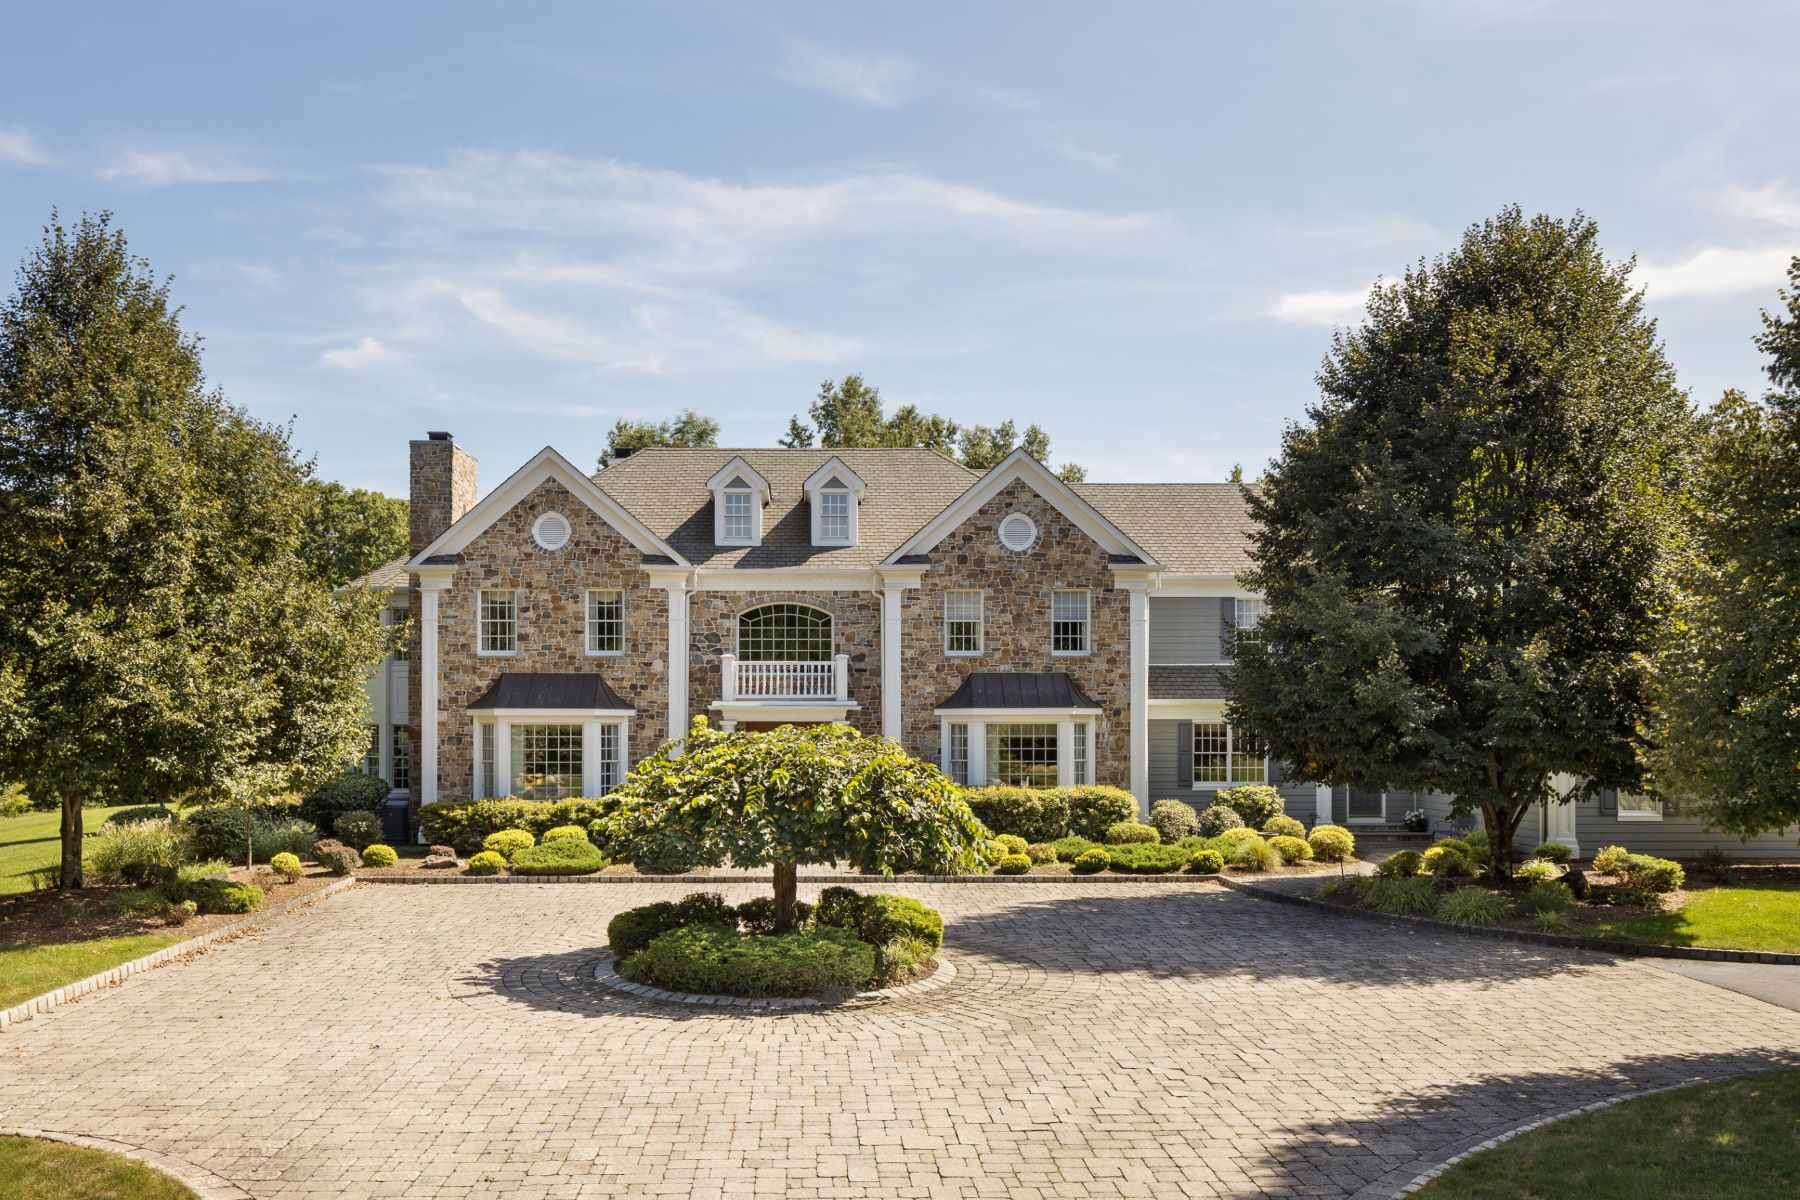 Single Family Homes for Sale at Exceptional Custom Residence 17 Beaver Creek Court, Basking Ridge, New Jersey 07920 United States